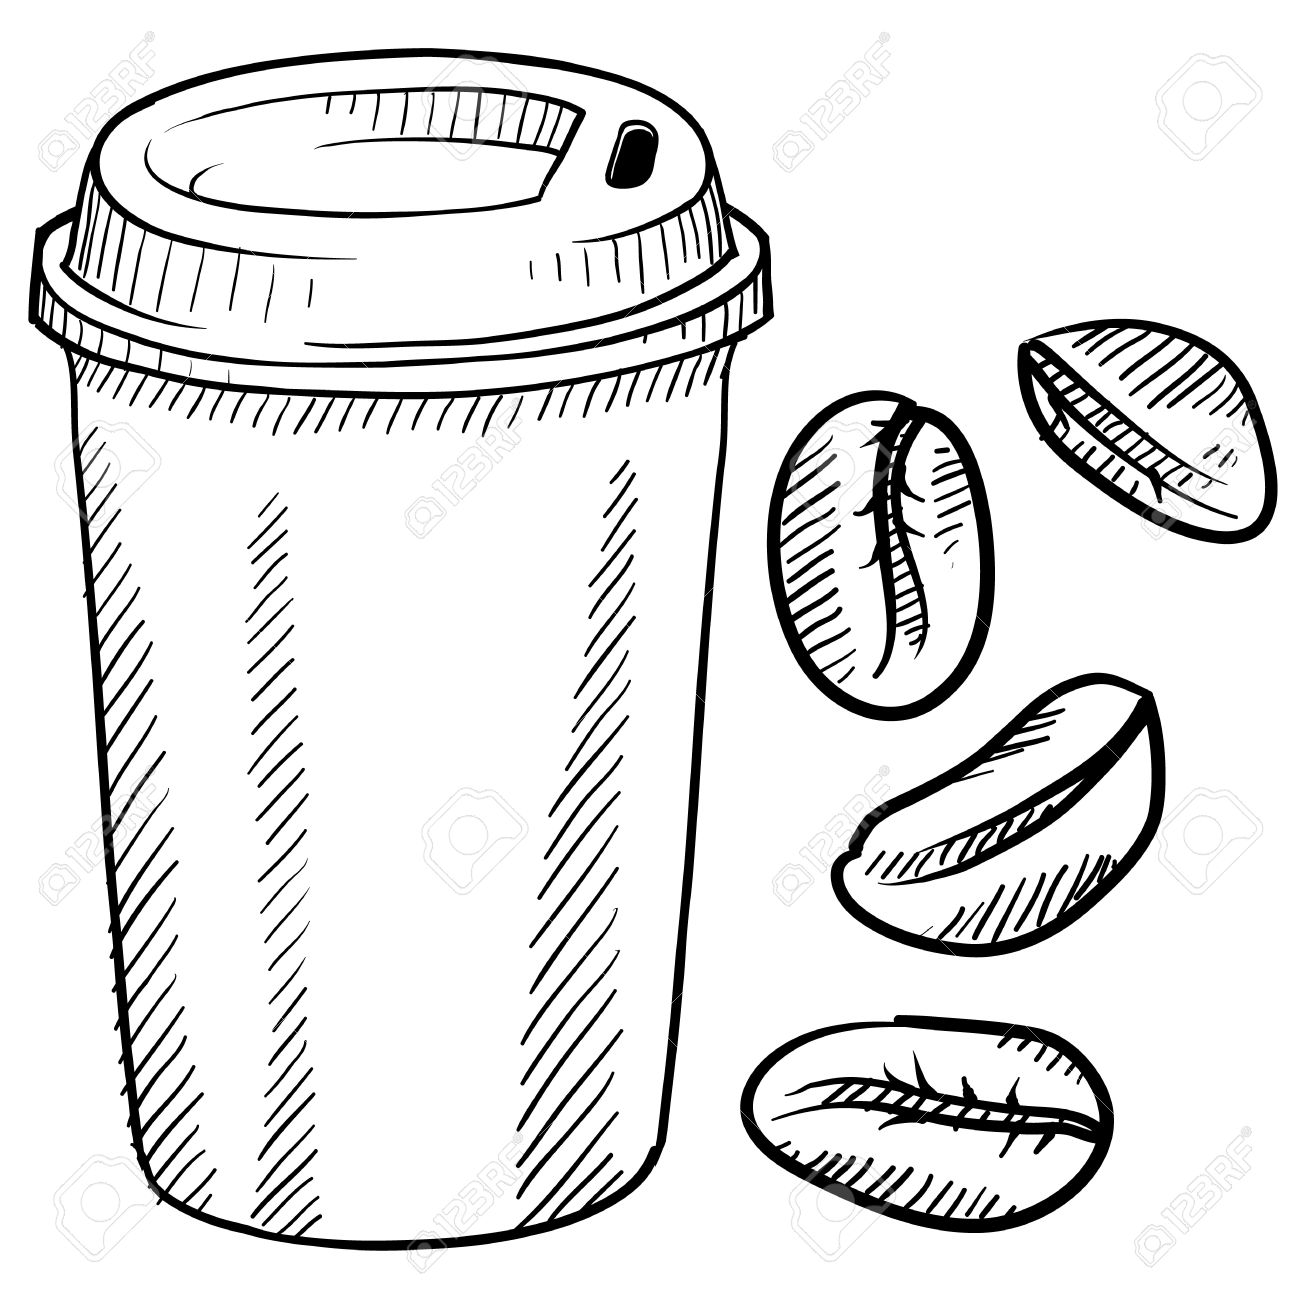 Doodle Style Coffee Bean And Travel Mug Royalty Free Cliparts Vectors And Stock Illustration Image 13258669